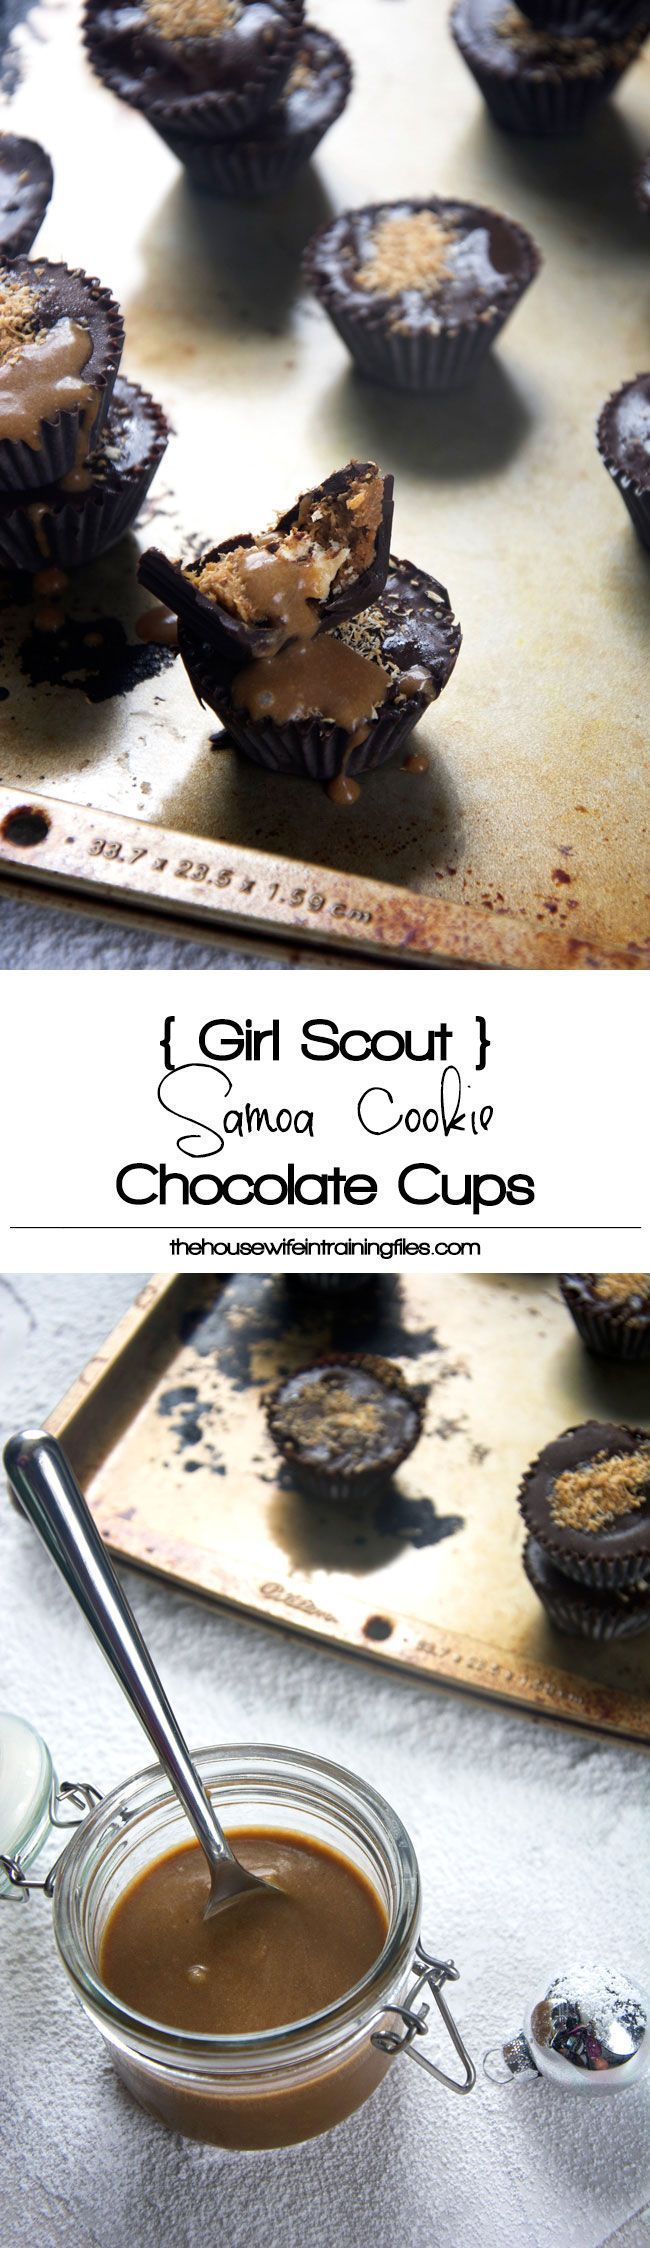 Your dessert table gets spruced up with these Girl Scout Samoa Cookie Chocolate Cups! All the flavors of your favorite girl scout cookie stuffed inside a chocolate cup!